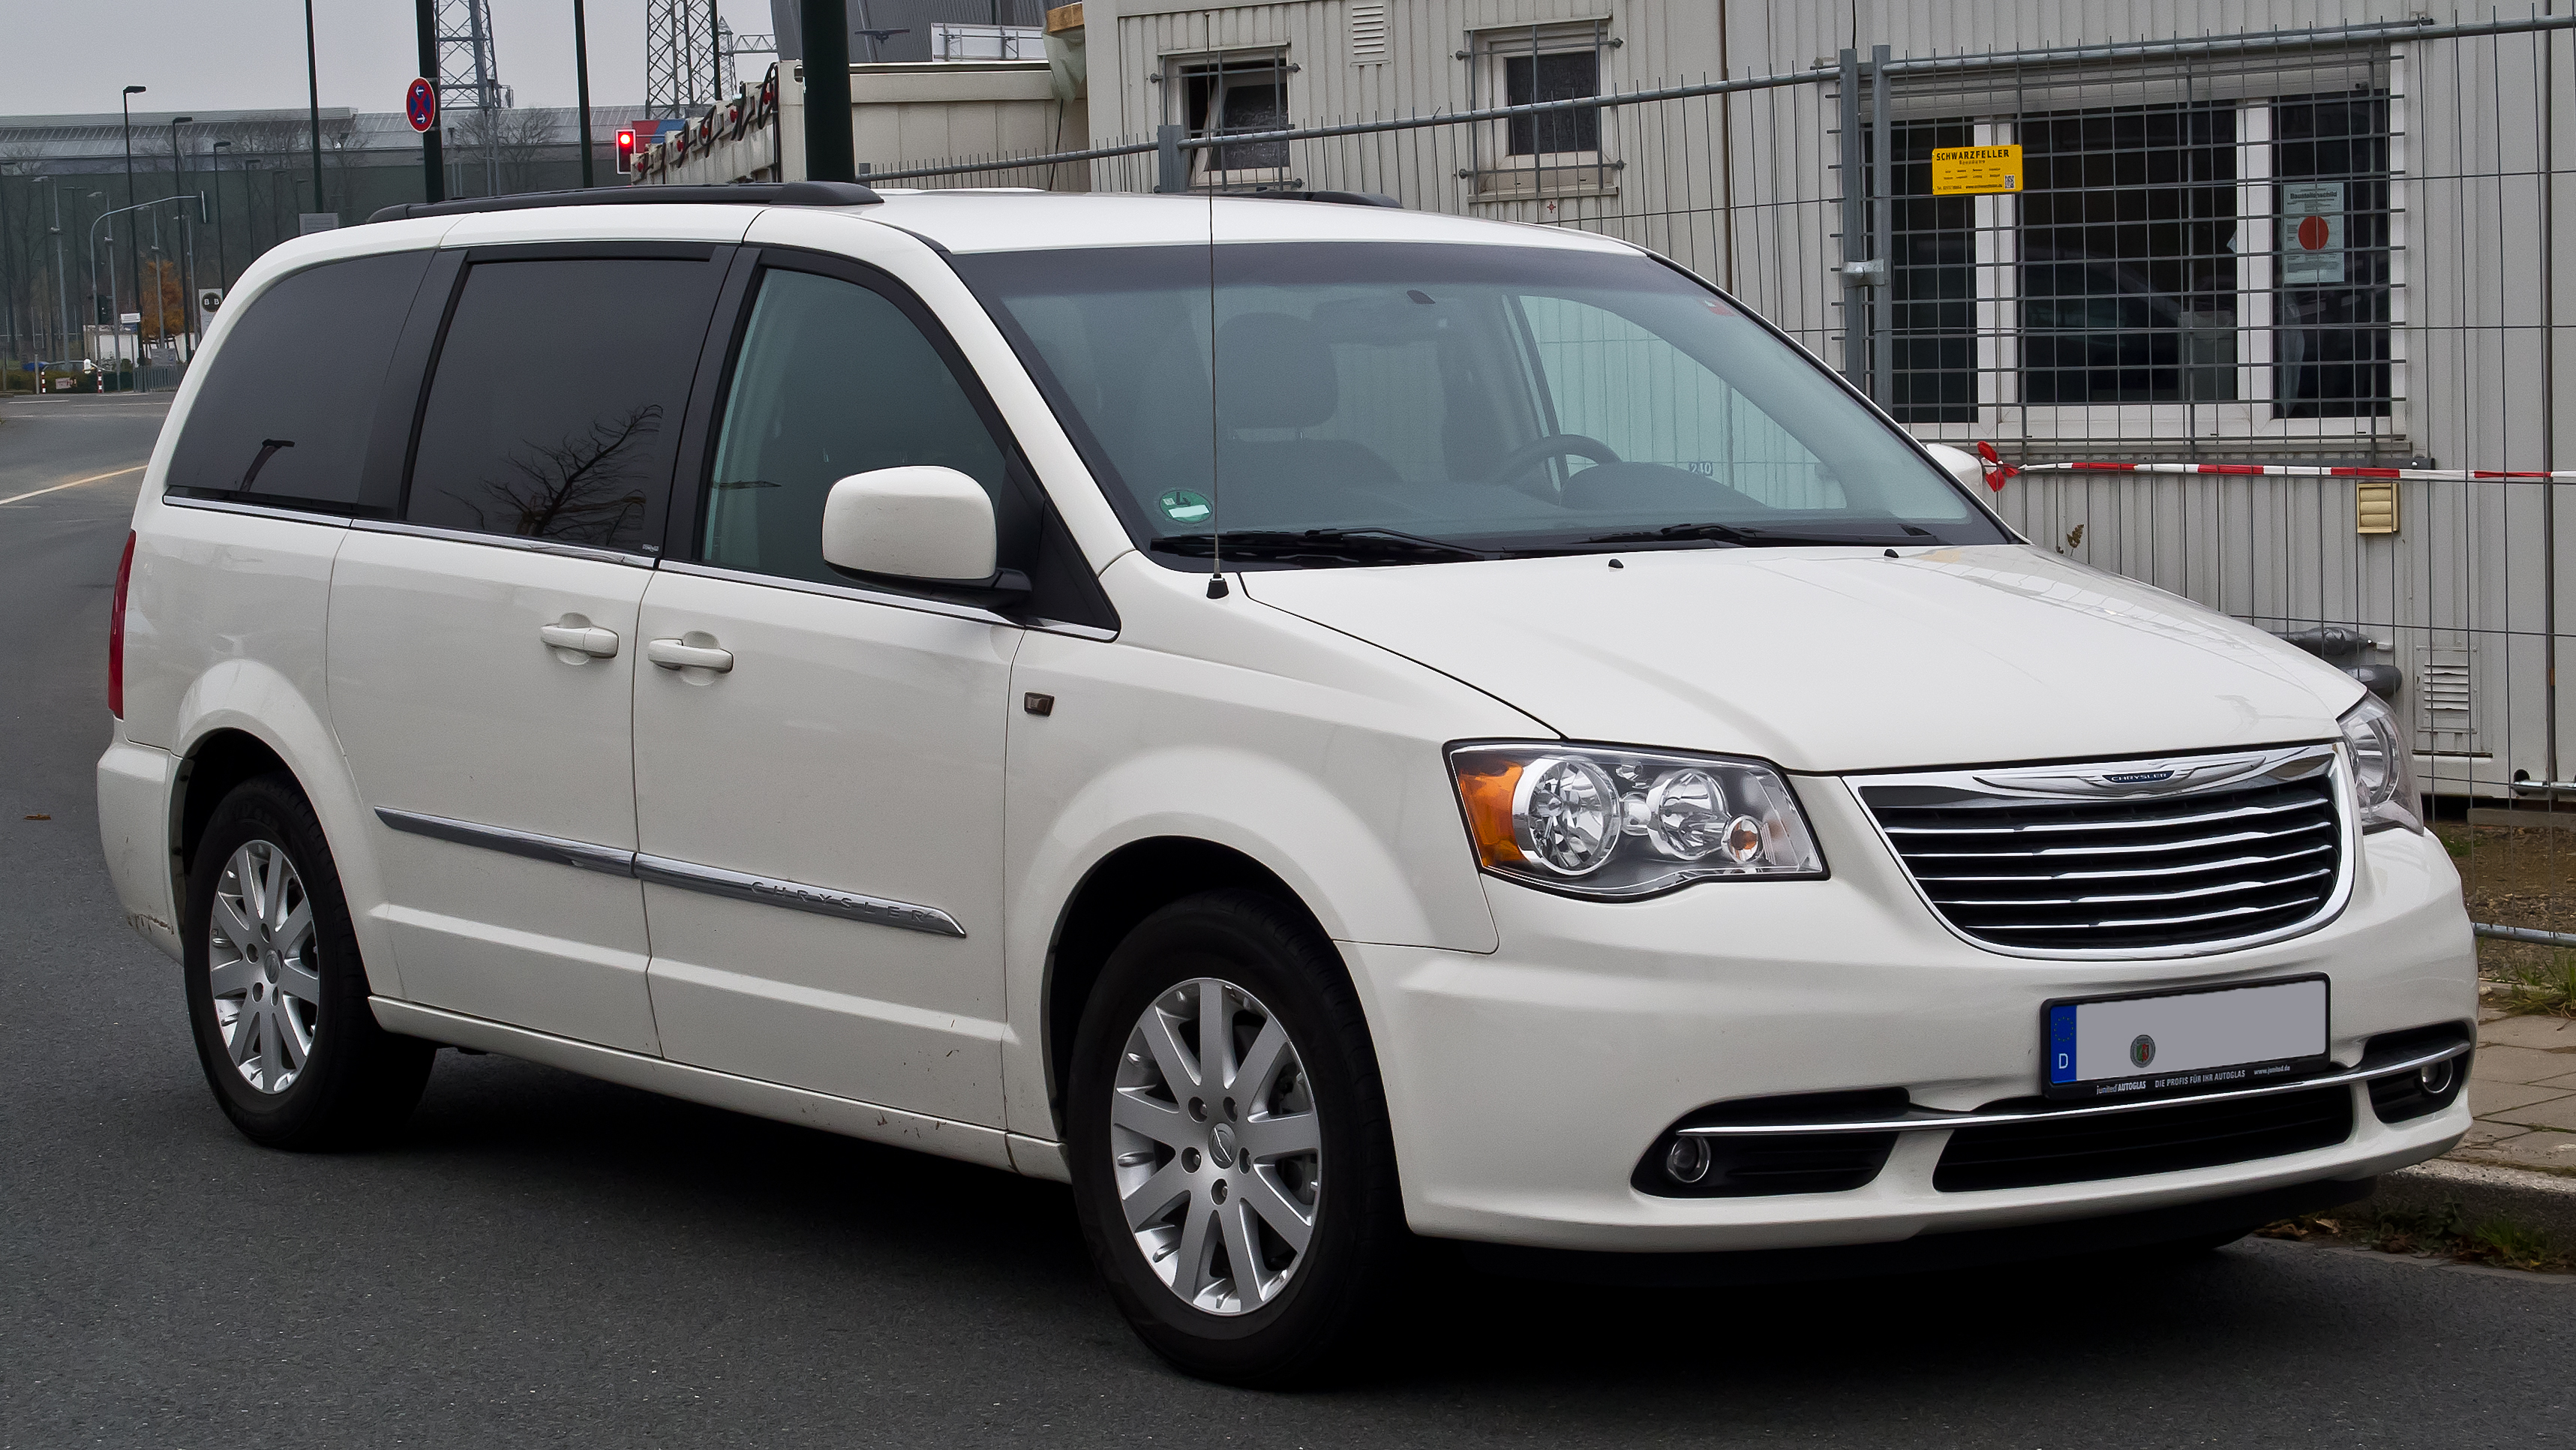 datei chrysler town country 3 6 v6 touring v facelift frontansicht 30 november 2014. Black Bedroom Furniture Sets. Home Design Ideas